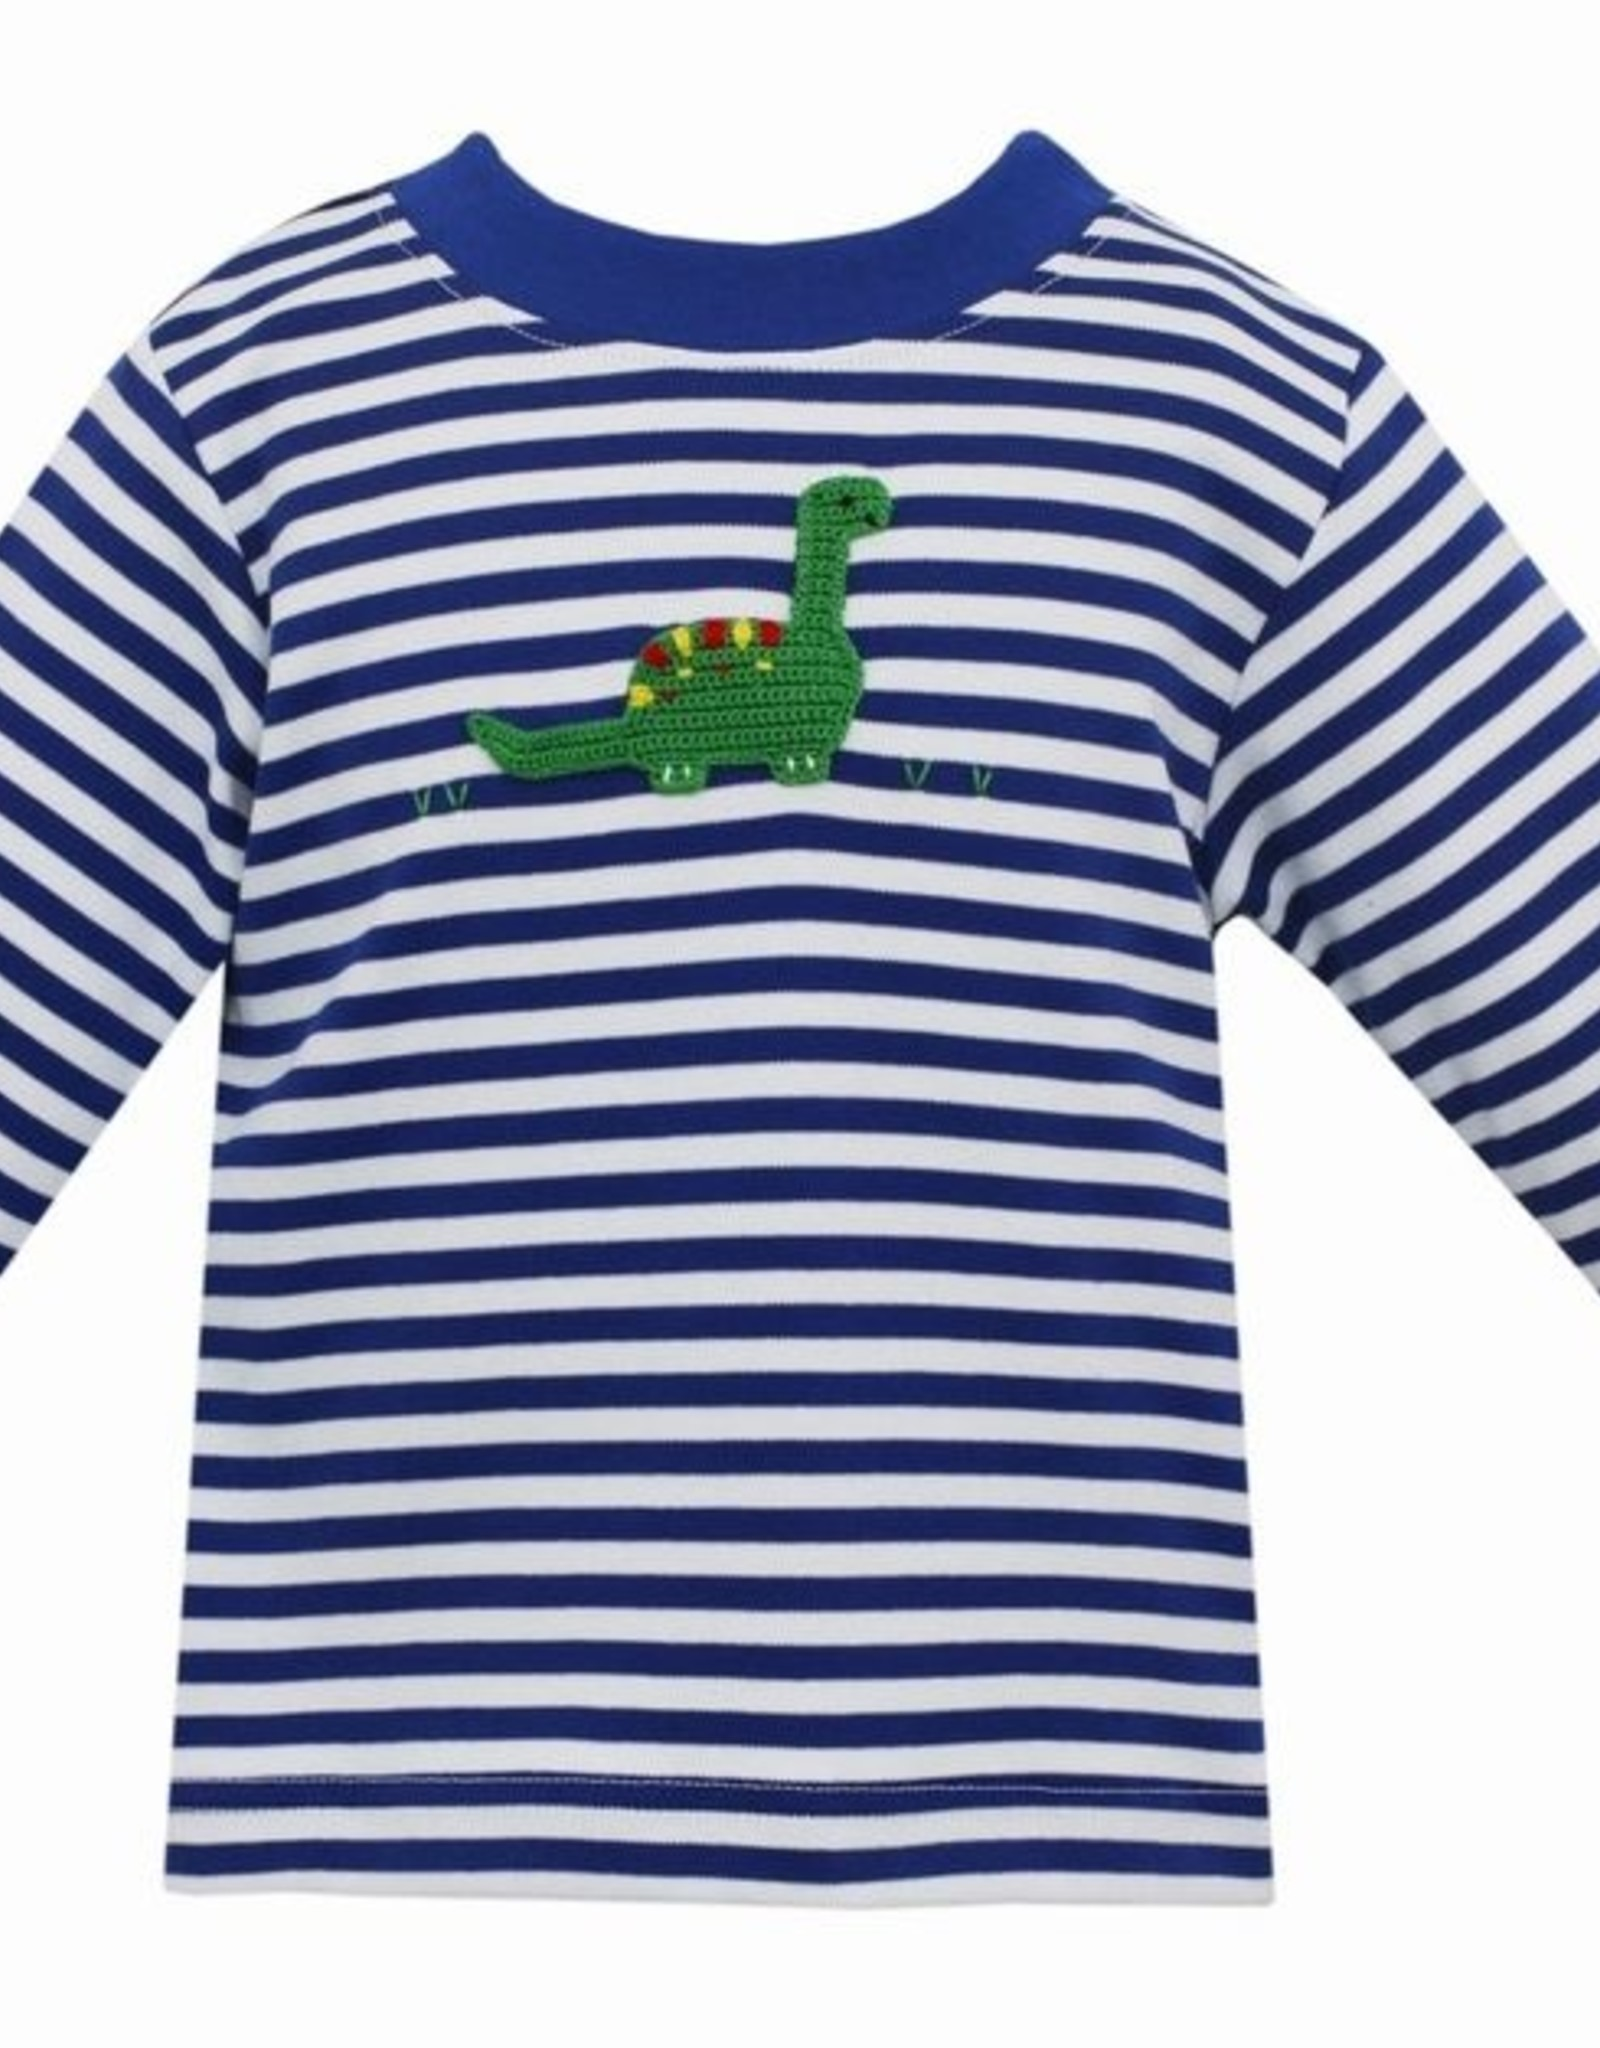 Claire and Charlie Dinosaur Boy's Royal Stripe T-Shirt Long Sleeve